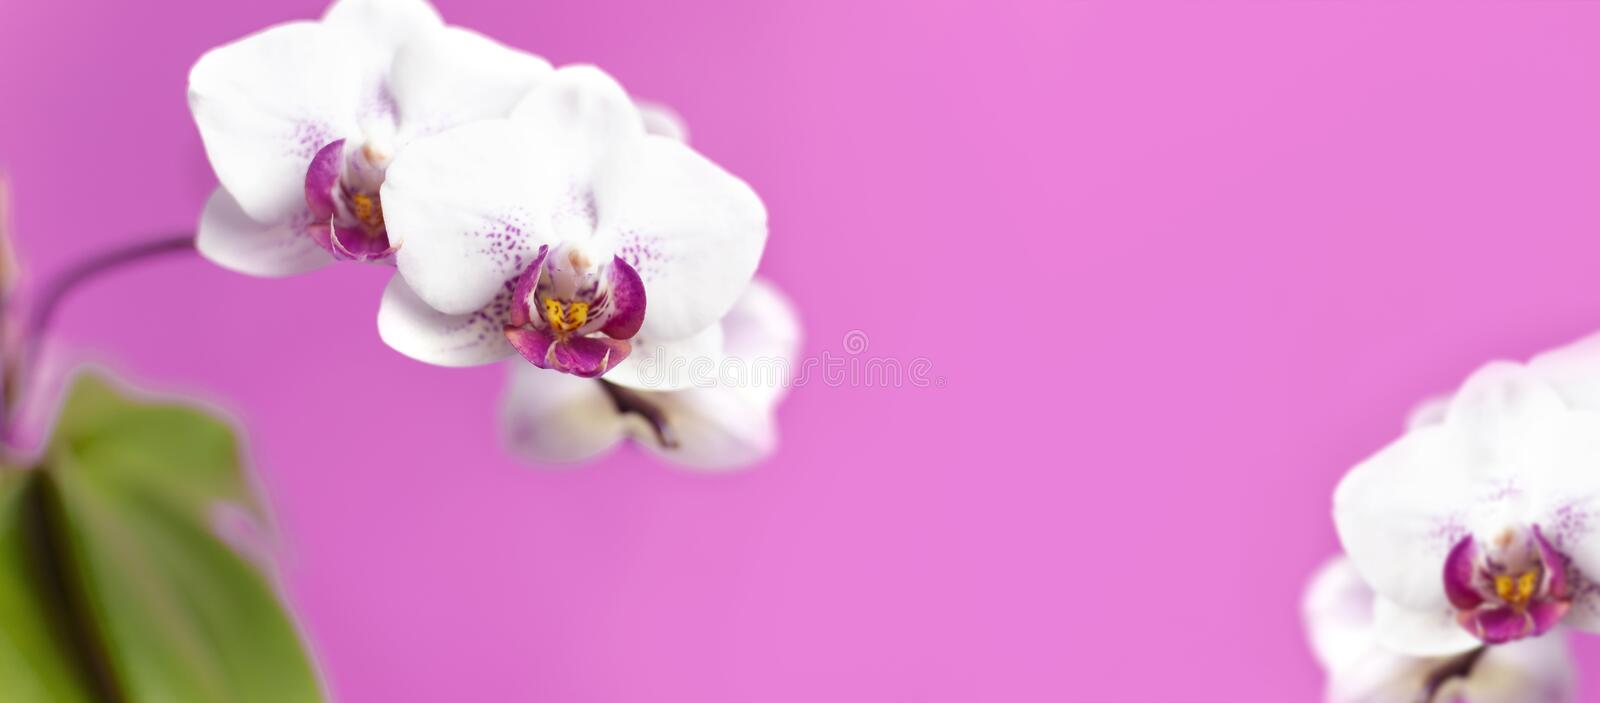 Beautiful White with pink Phalaenopsis orchid flowers on bright pink background. Tropical flower, branch of orchid close up. Pink stock photography